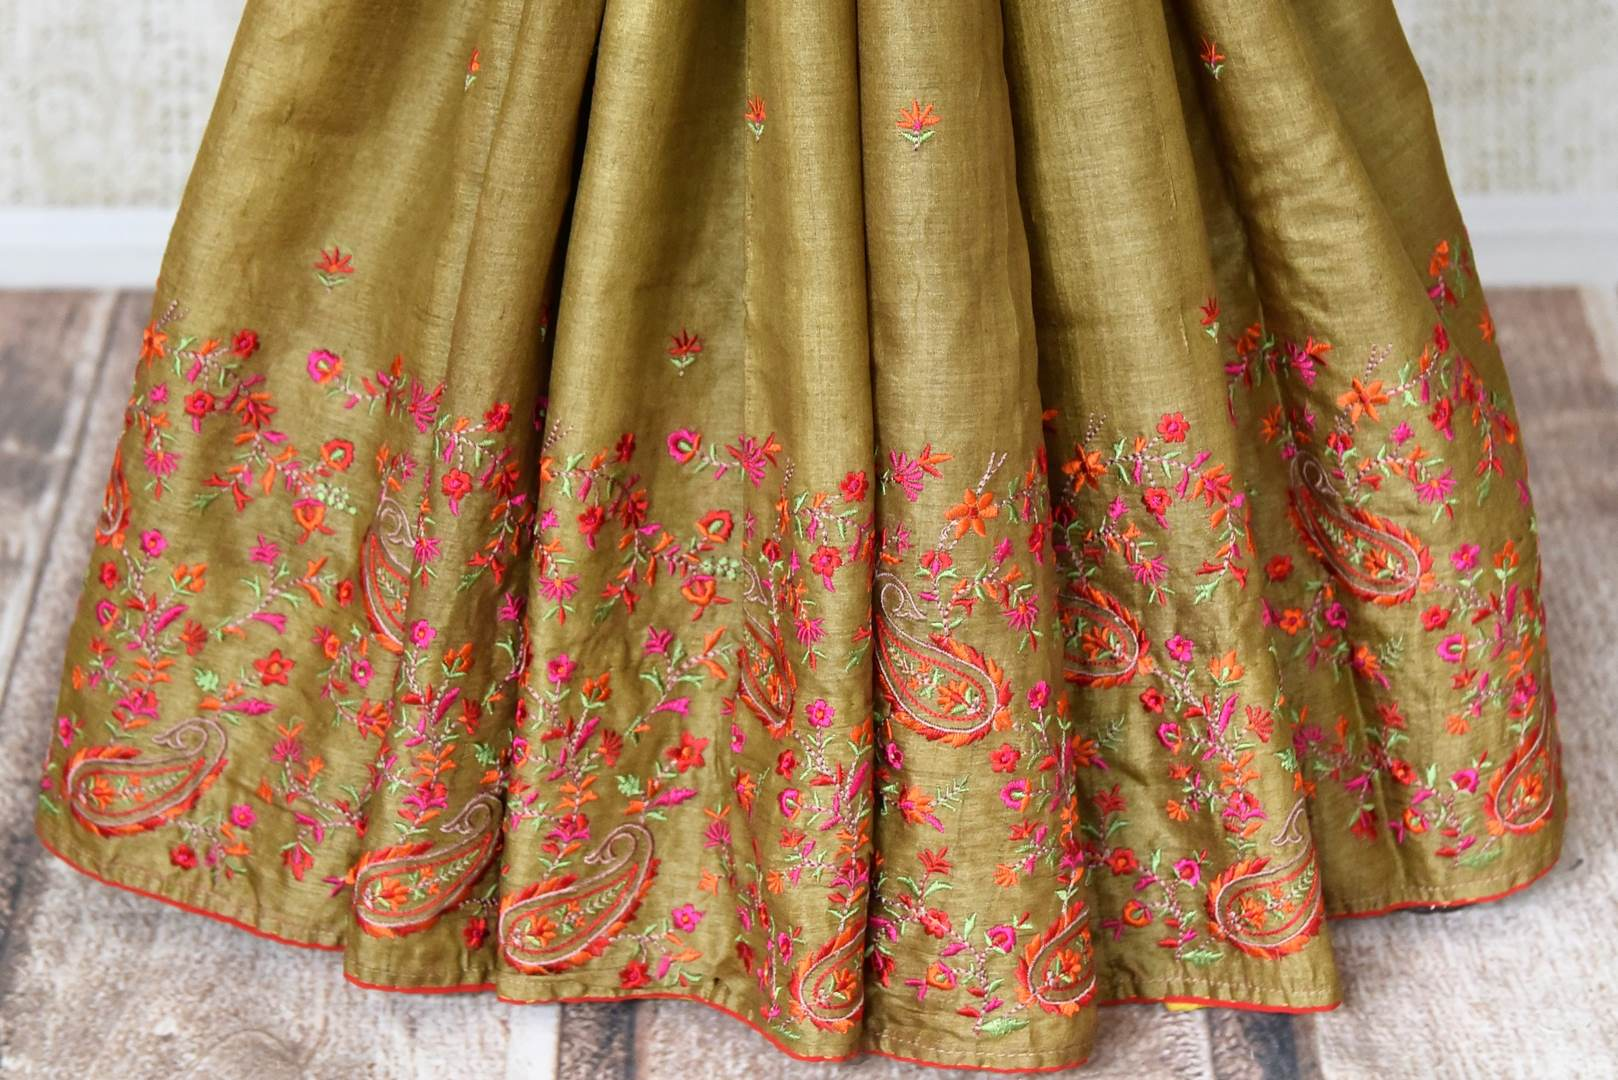 Buy olive green embroidered tussar silk saree online in USA. Shop beautiful designer sarees for weddings and special occasions from Pure Elegance Indian clothing store in USA.-pleats